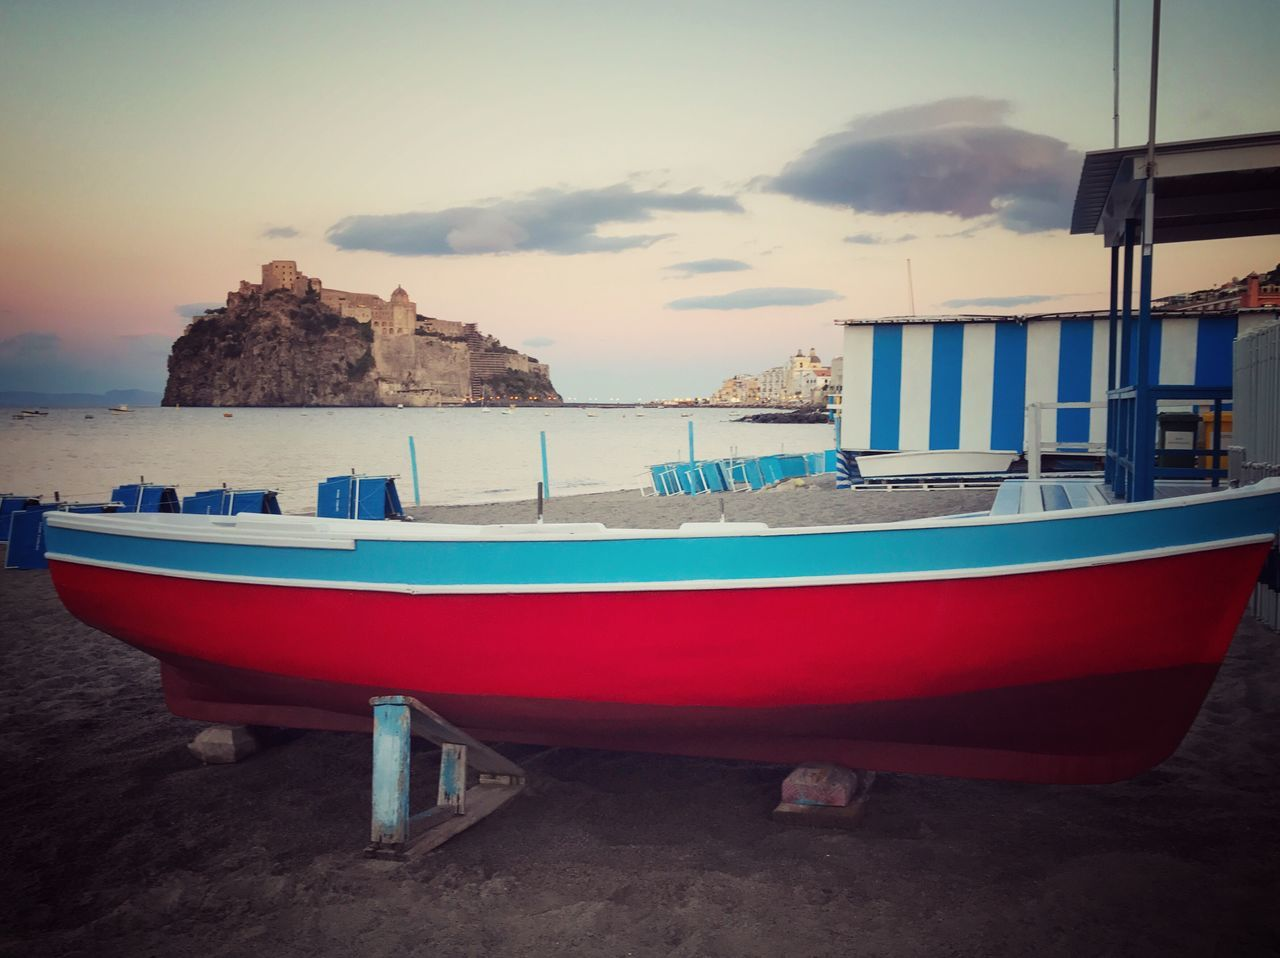 Live For The Story Transportation Nautical Vessel Sea Mode Of Transport Moored Sky Boat Beach No People Nature Sand Cloud - Sky Outdoors Water Day Boats Barca <3 Castelloaragonese Ischia Ischia Island Beachphotography Summer